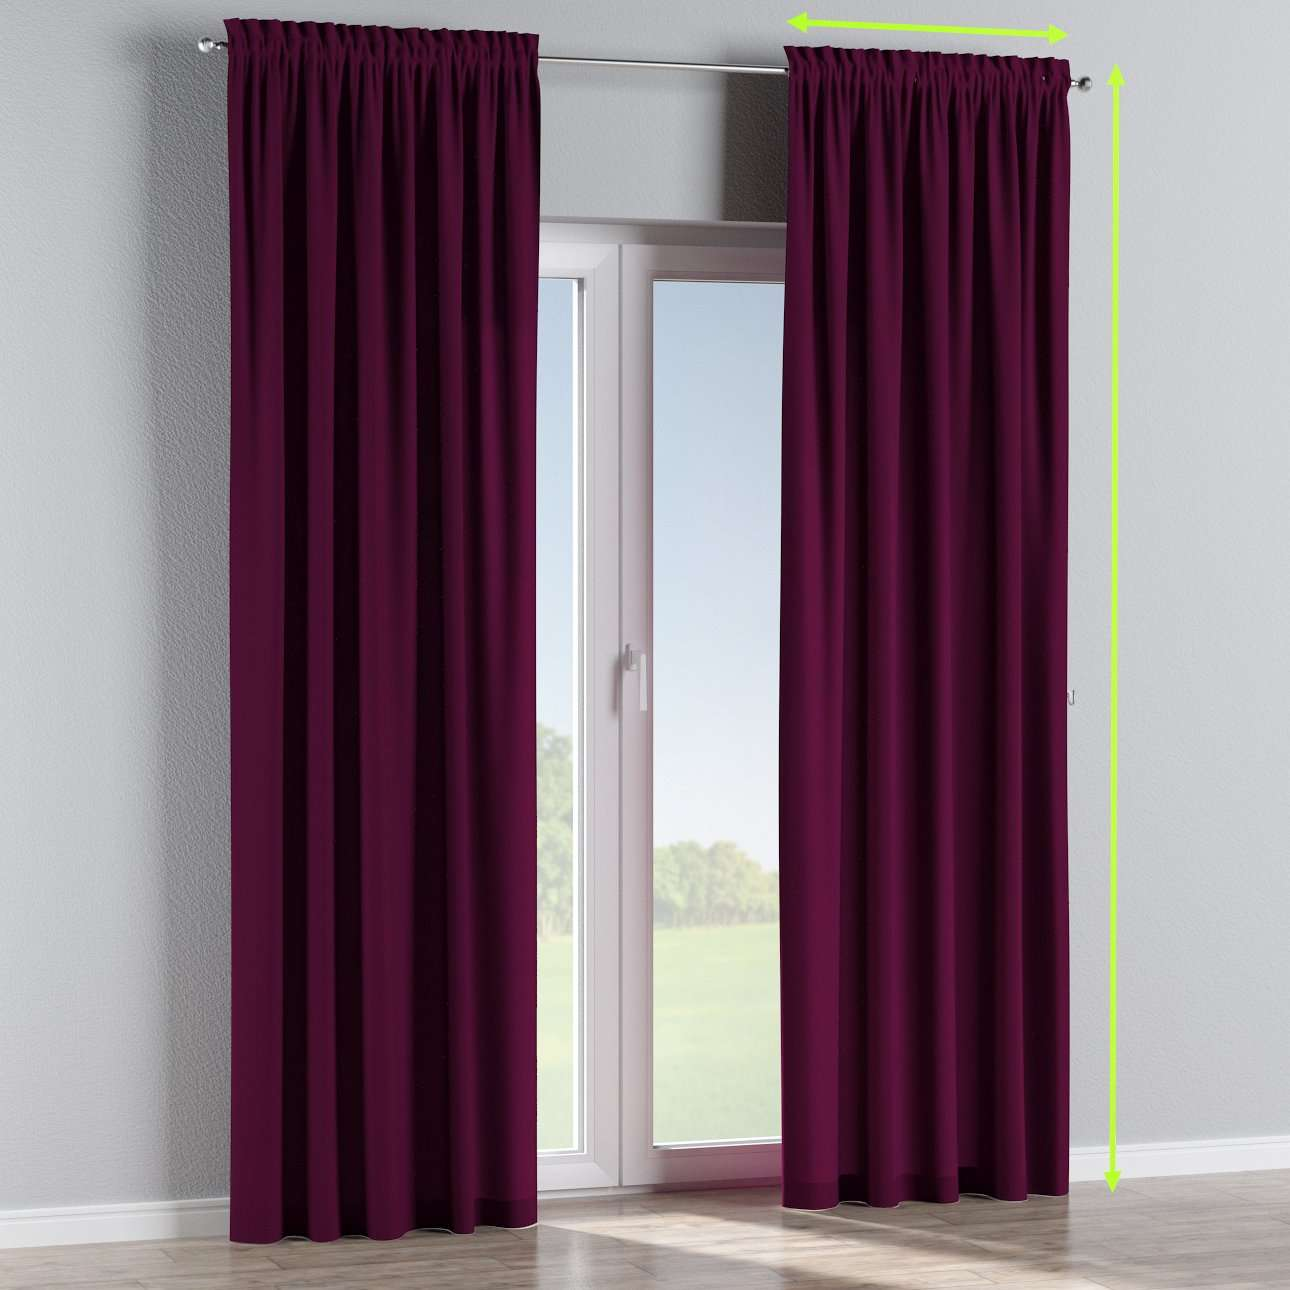 Slot and frill lined curtains in collection Chenille, fabric: 702-12